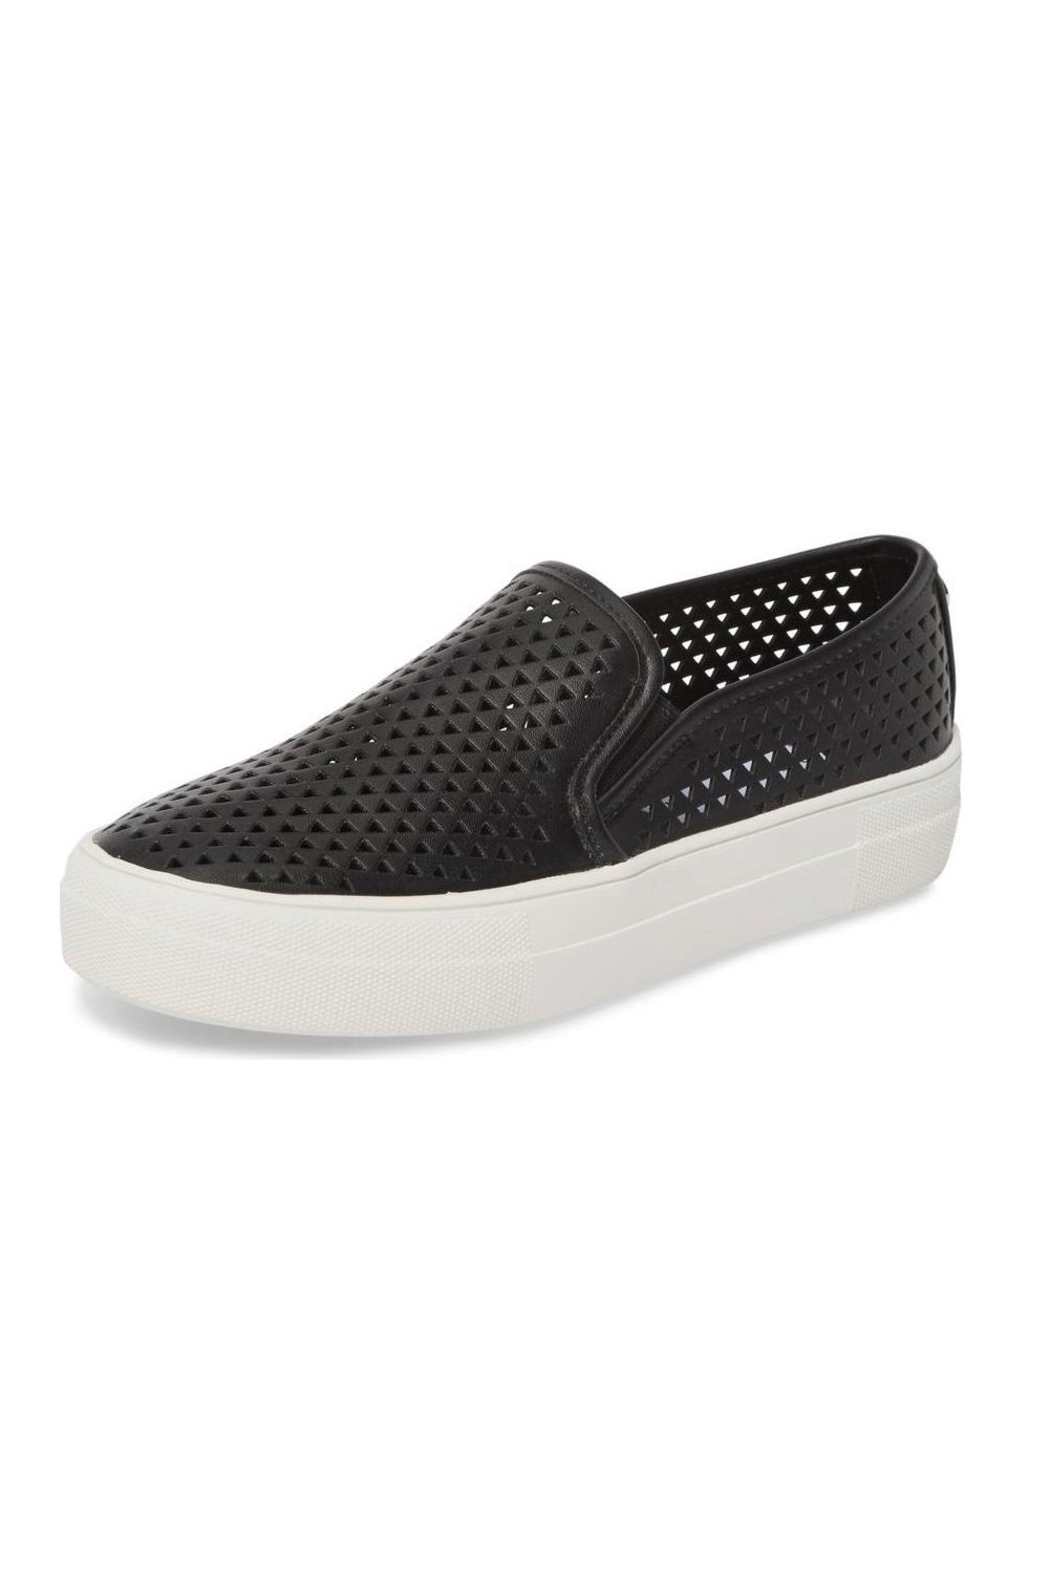 Steve Madden Gal-P Perforated Slip-On - Main Image